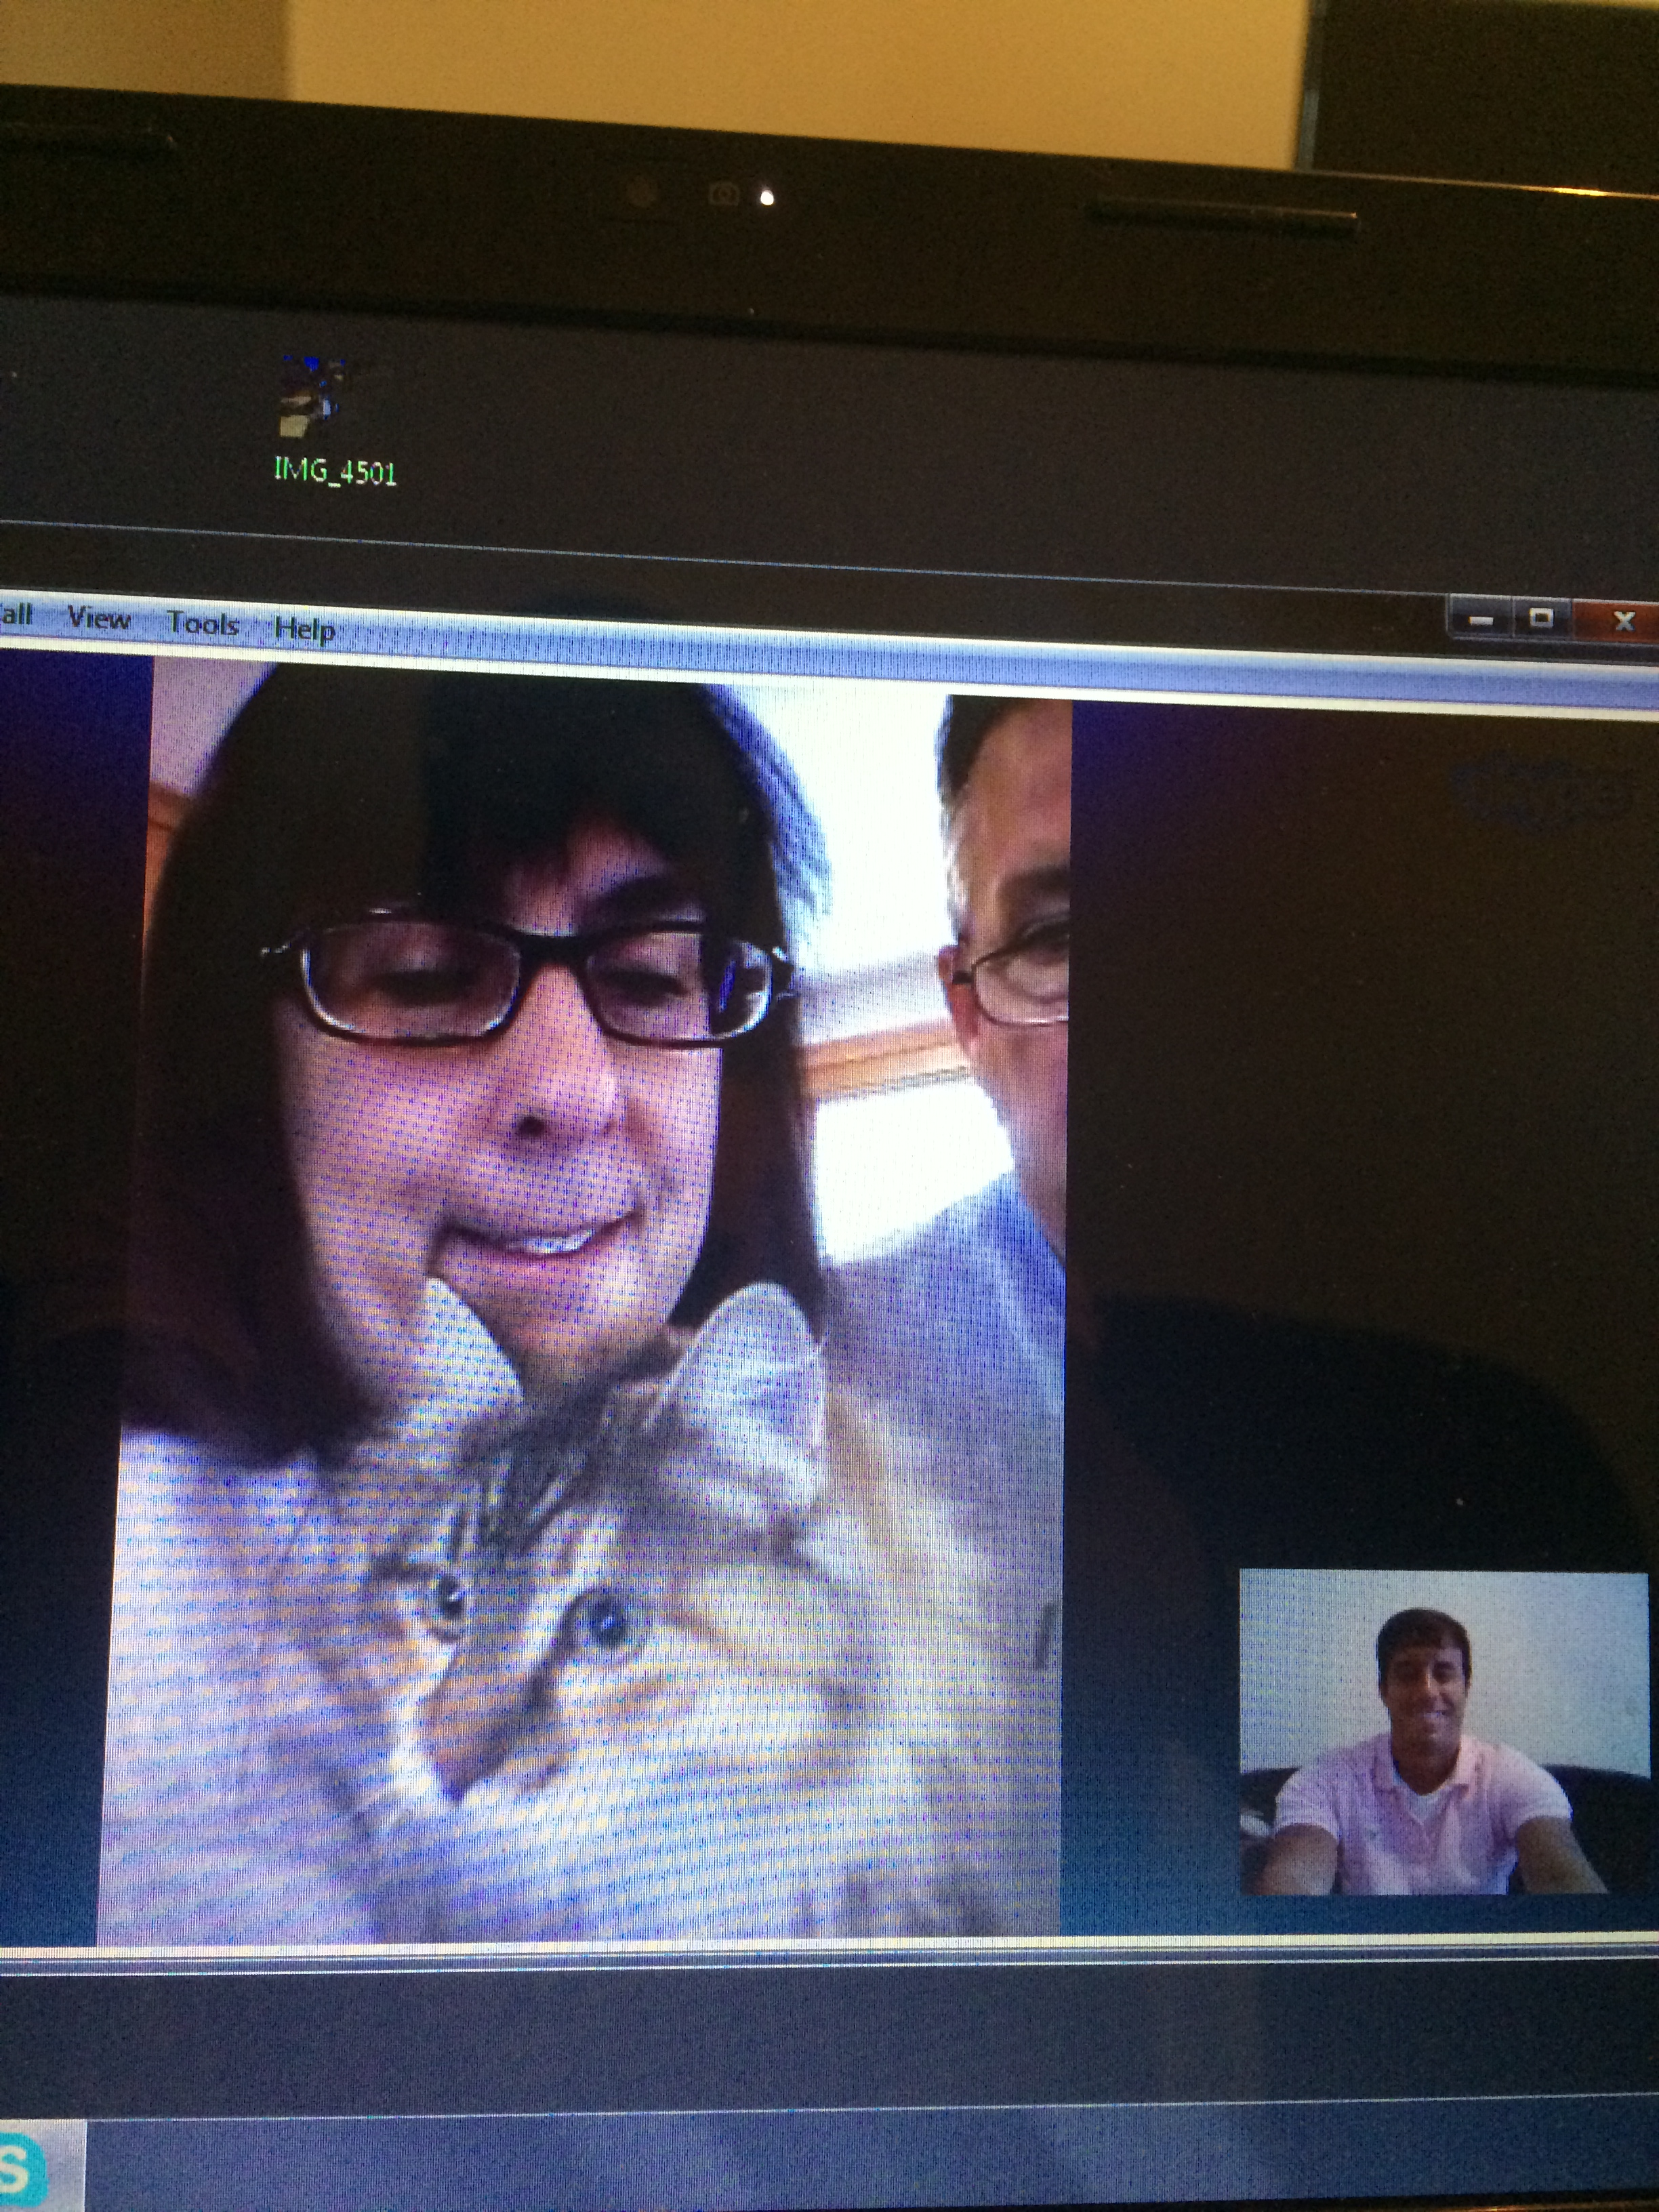 Last week my sister's cat made an appearance in our Skype session.